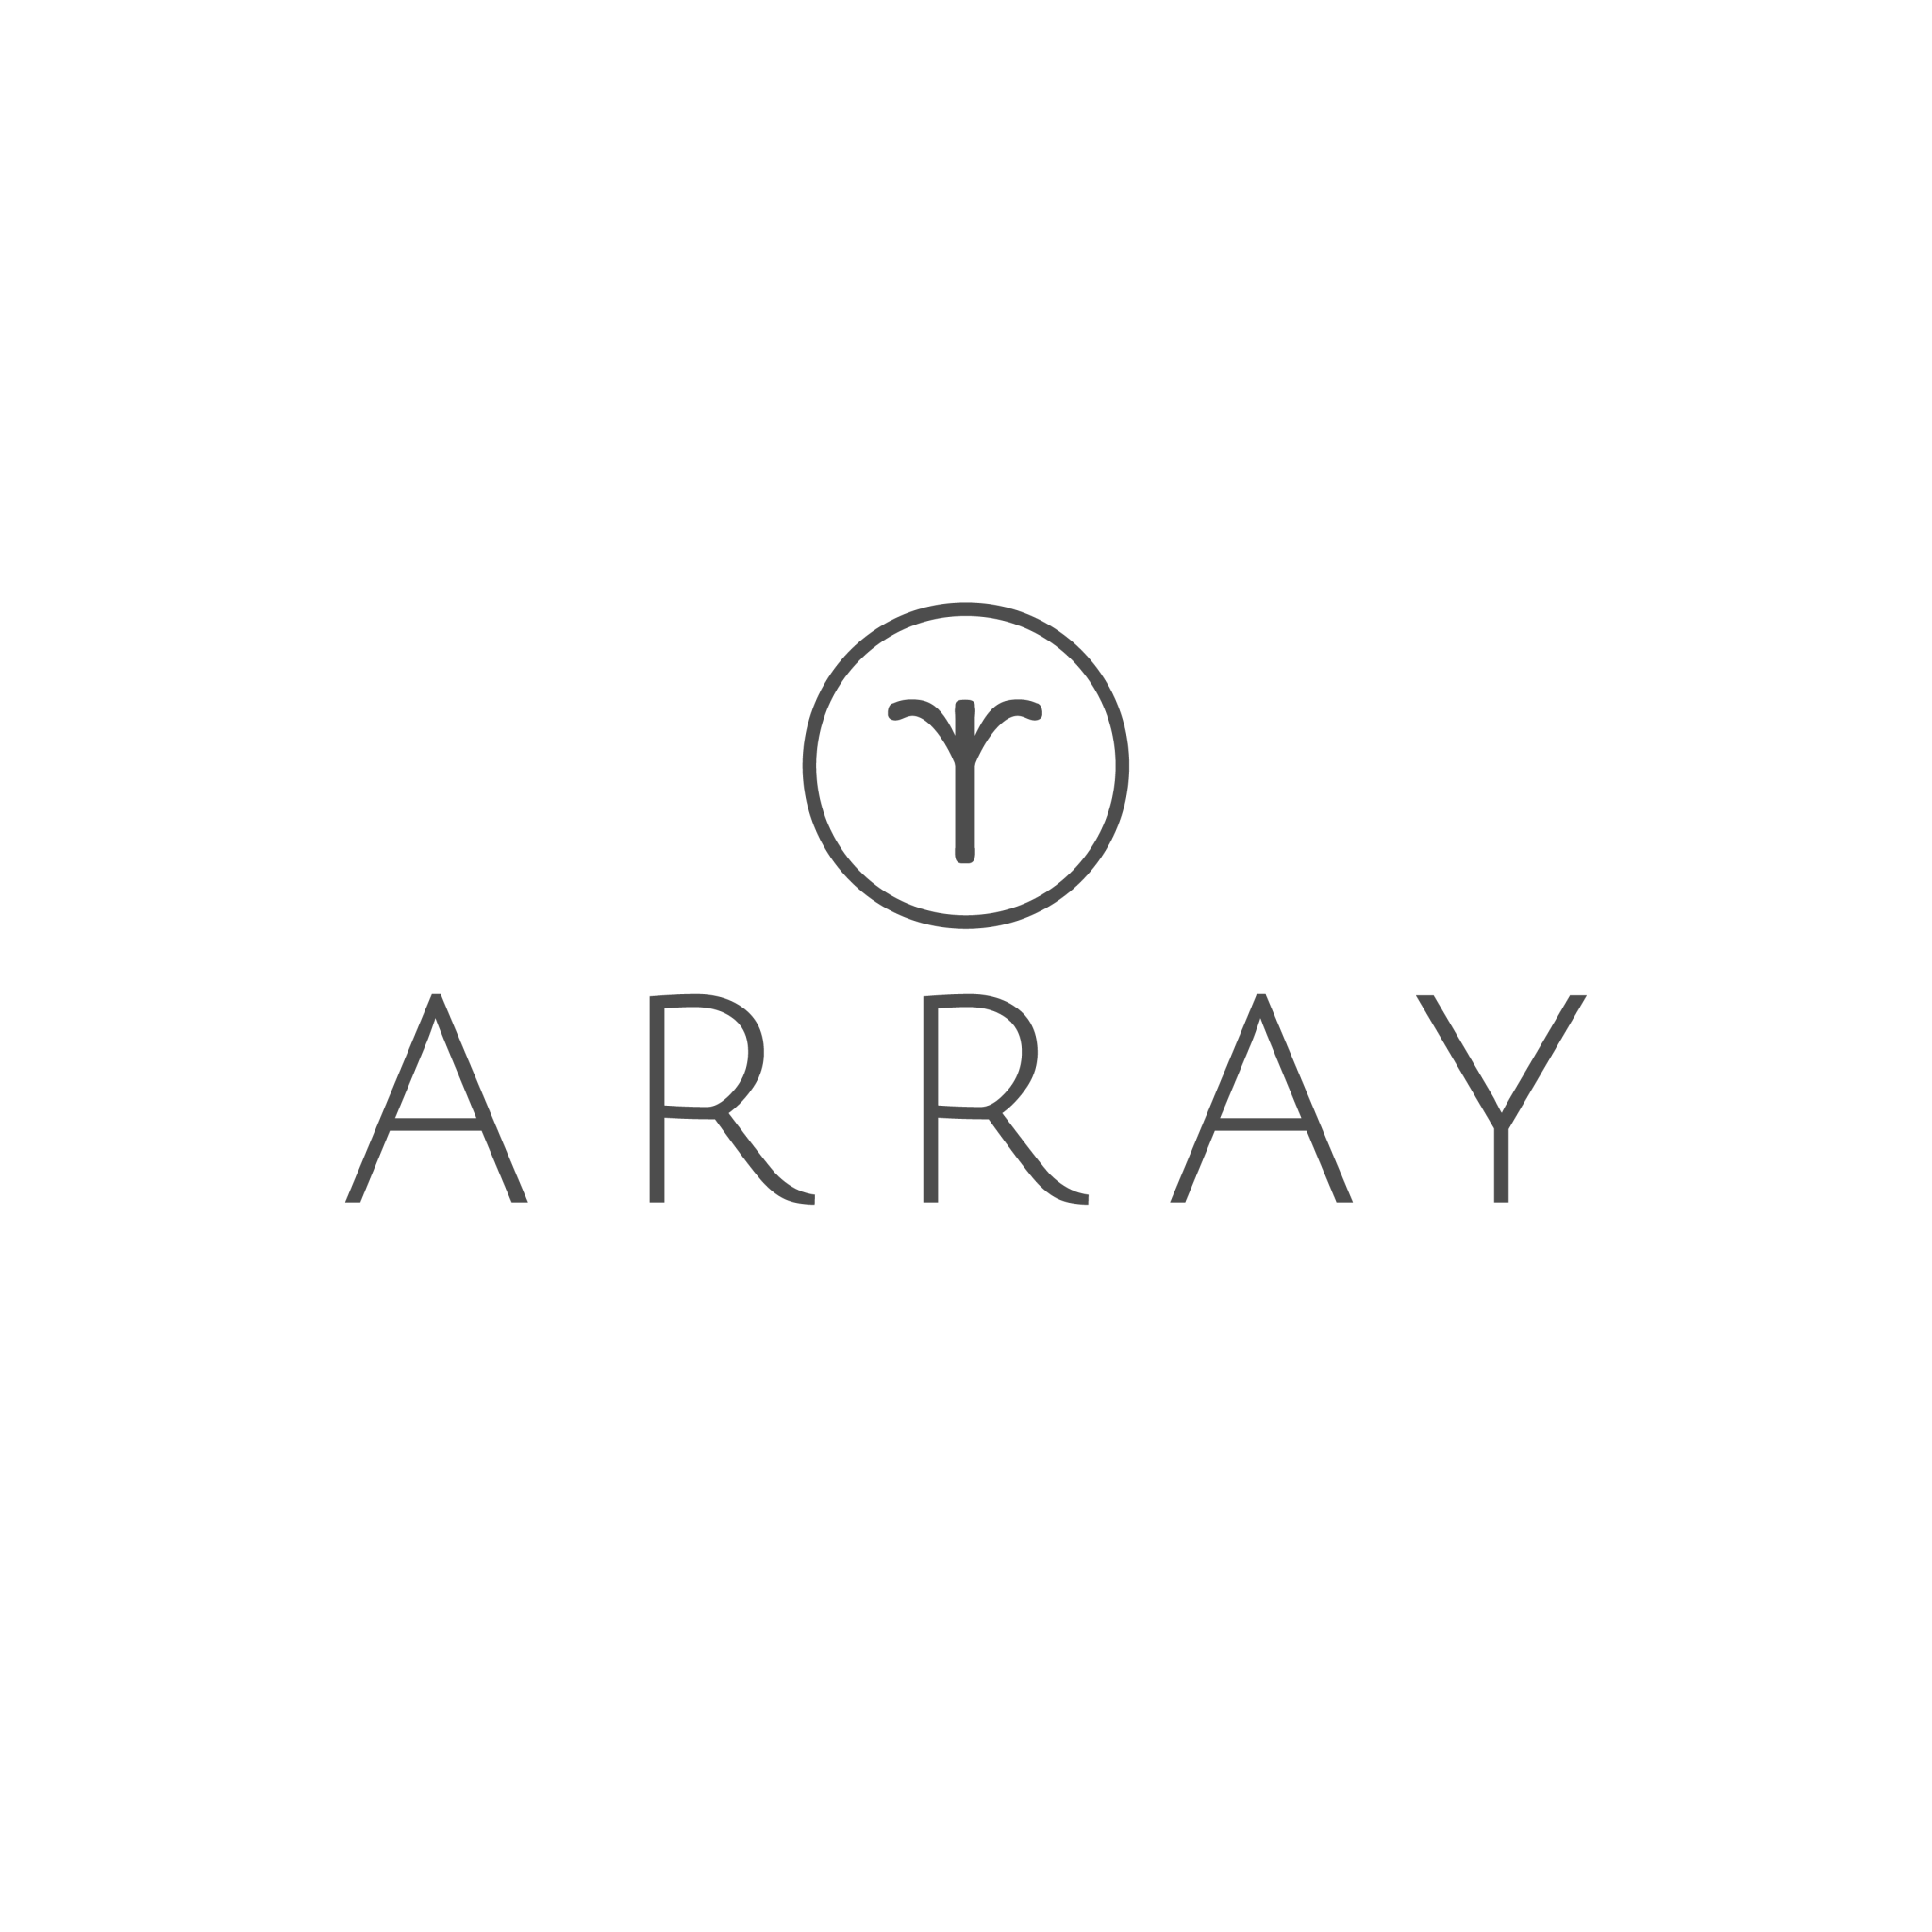 ARRAY DESIGN